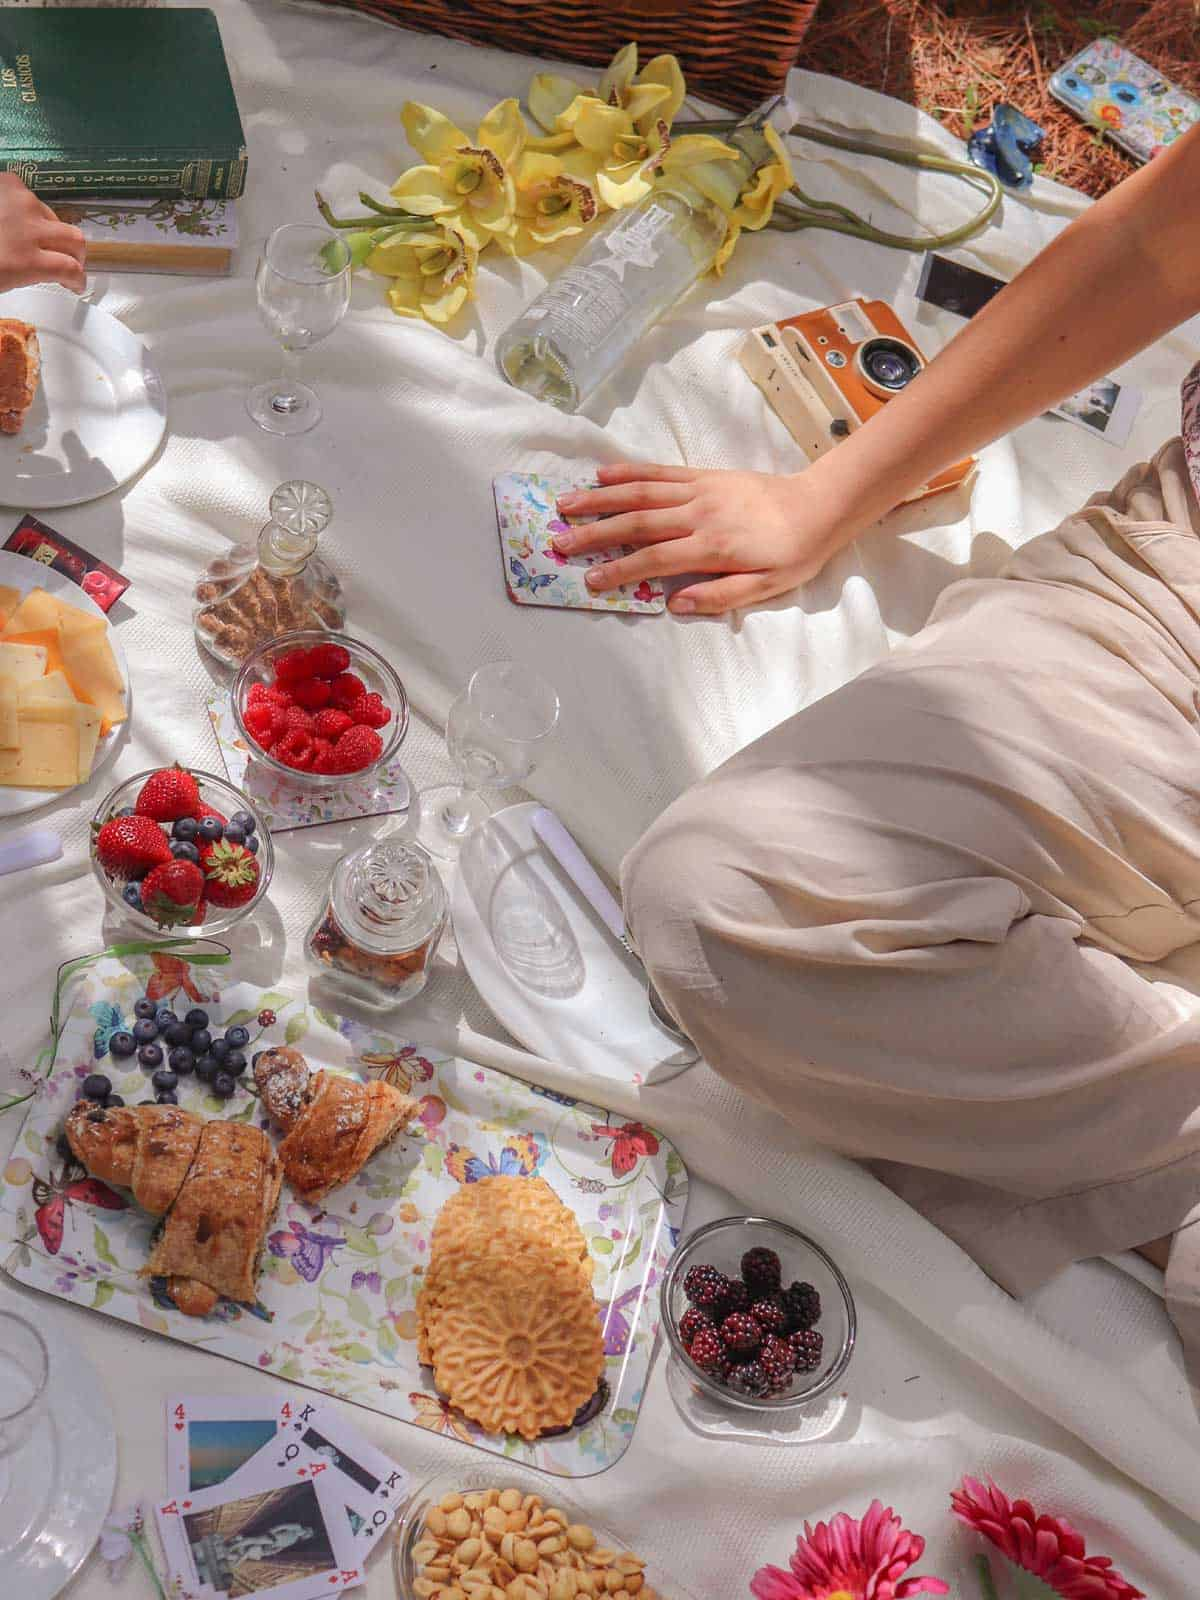 Picnic food spread out on a blanket with person sitting cross-legged